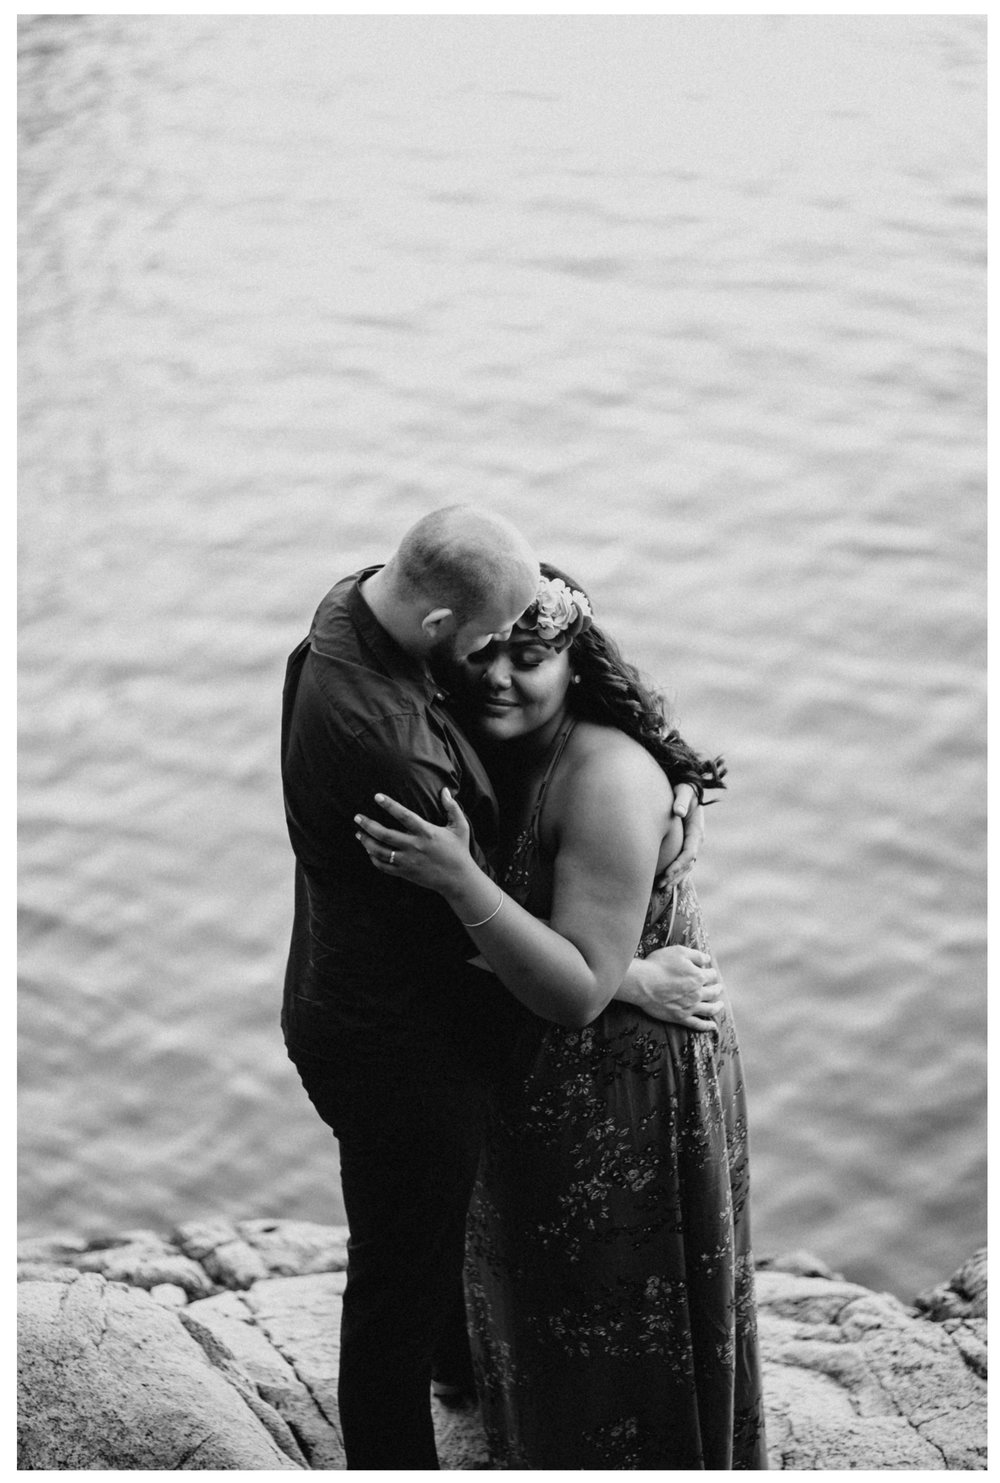 hug bride groom couple portrait engagement whytecliff park